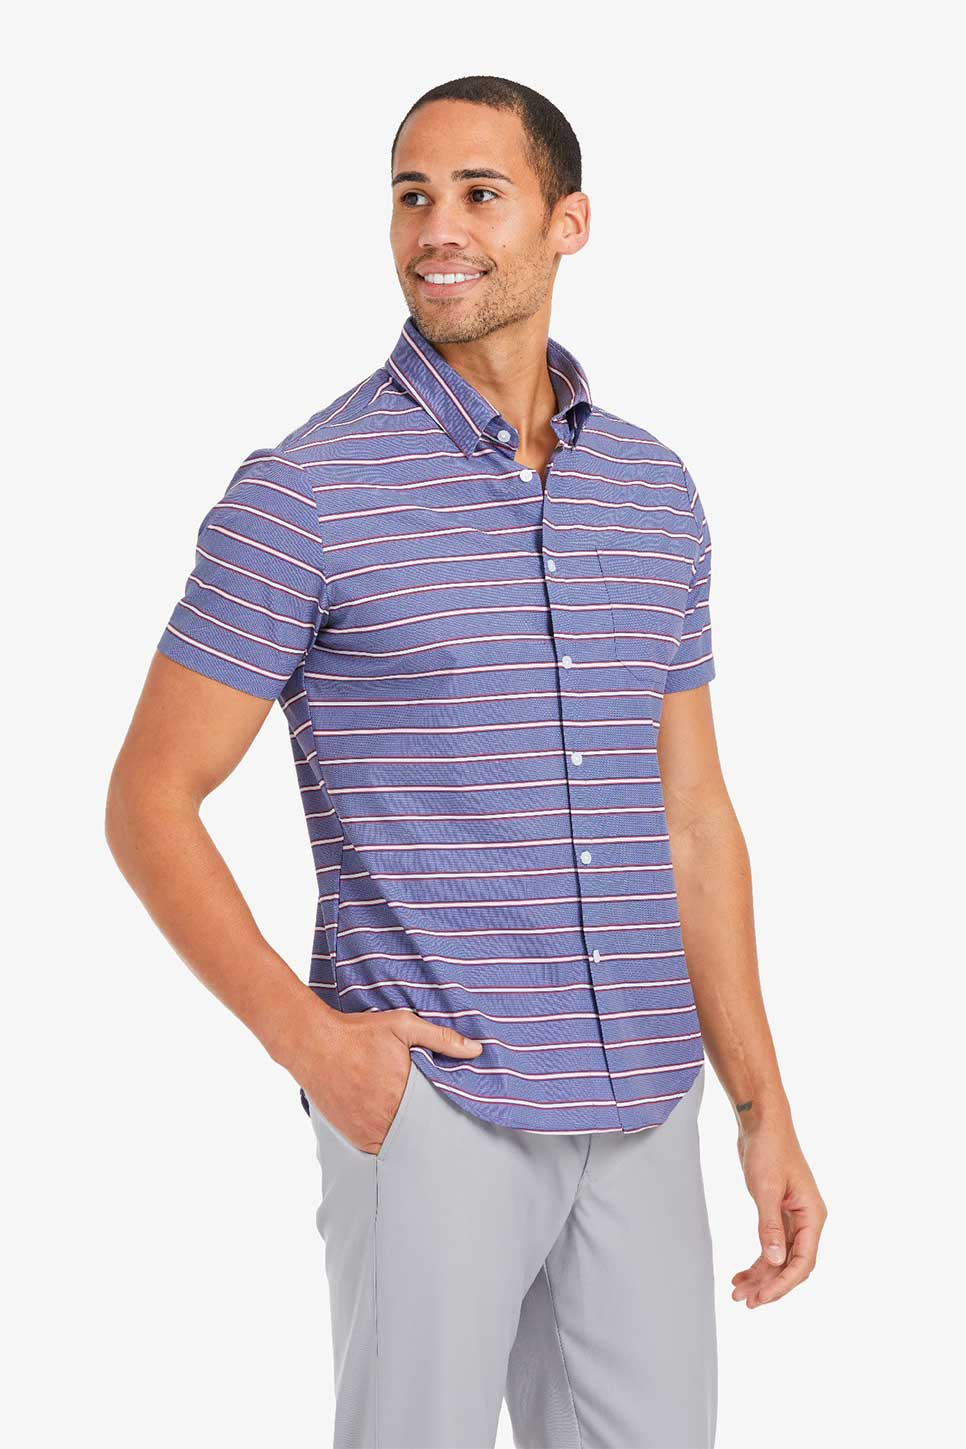 Mizzen + Main - Leeward SS - Chambray Horizontal Stripe - Front